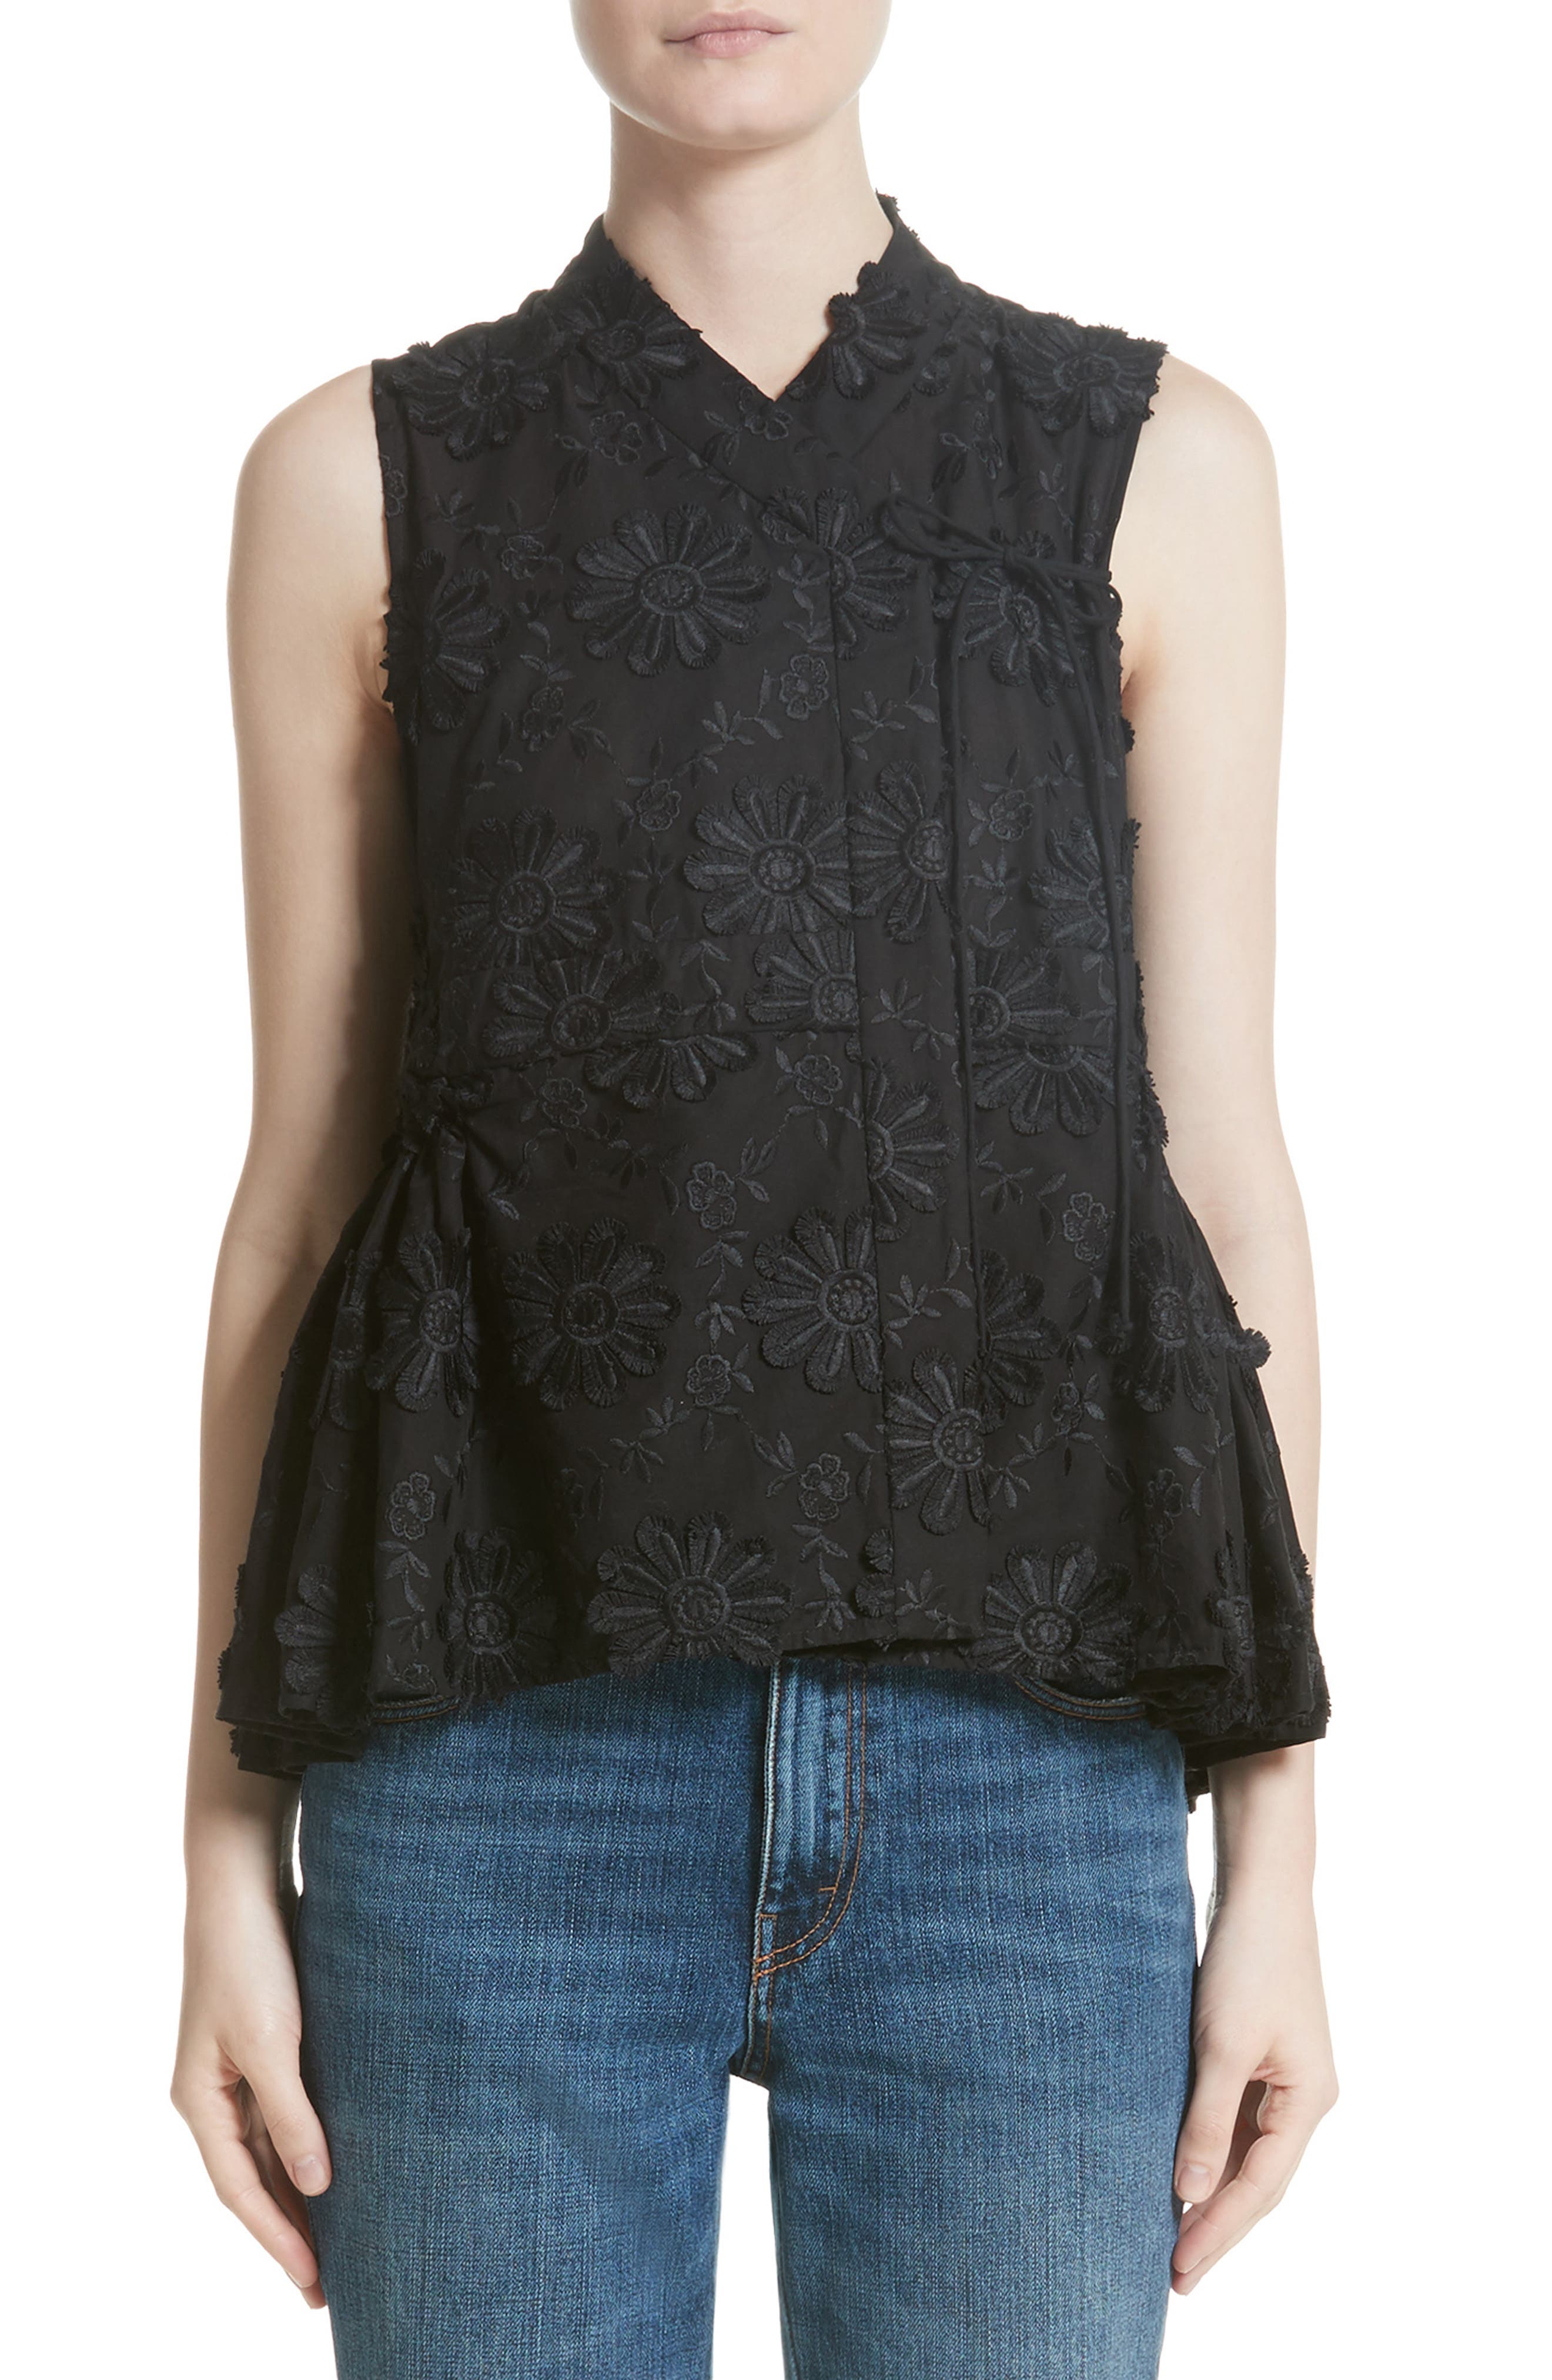 Co Floral Embroidered Peplum top